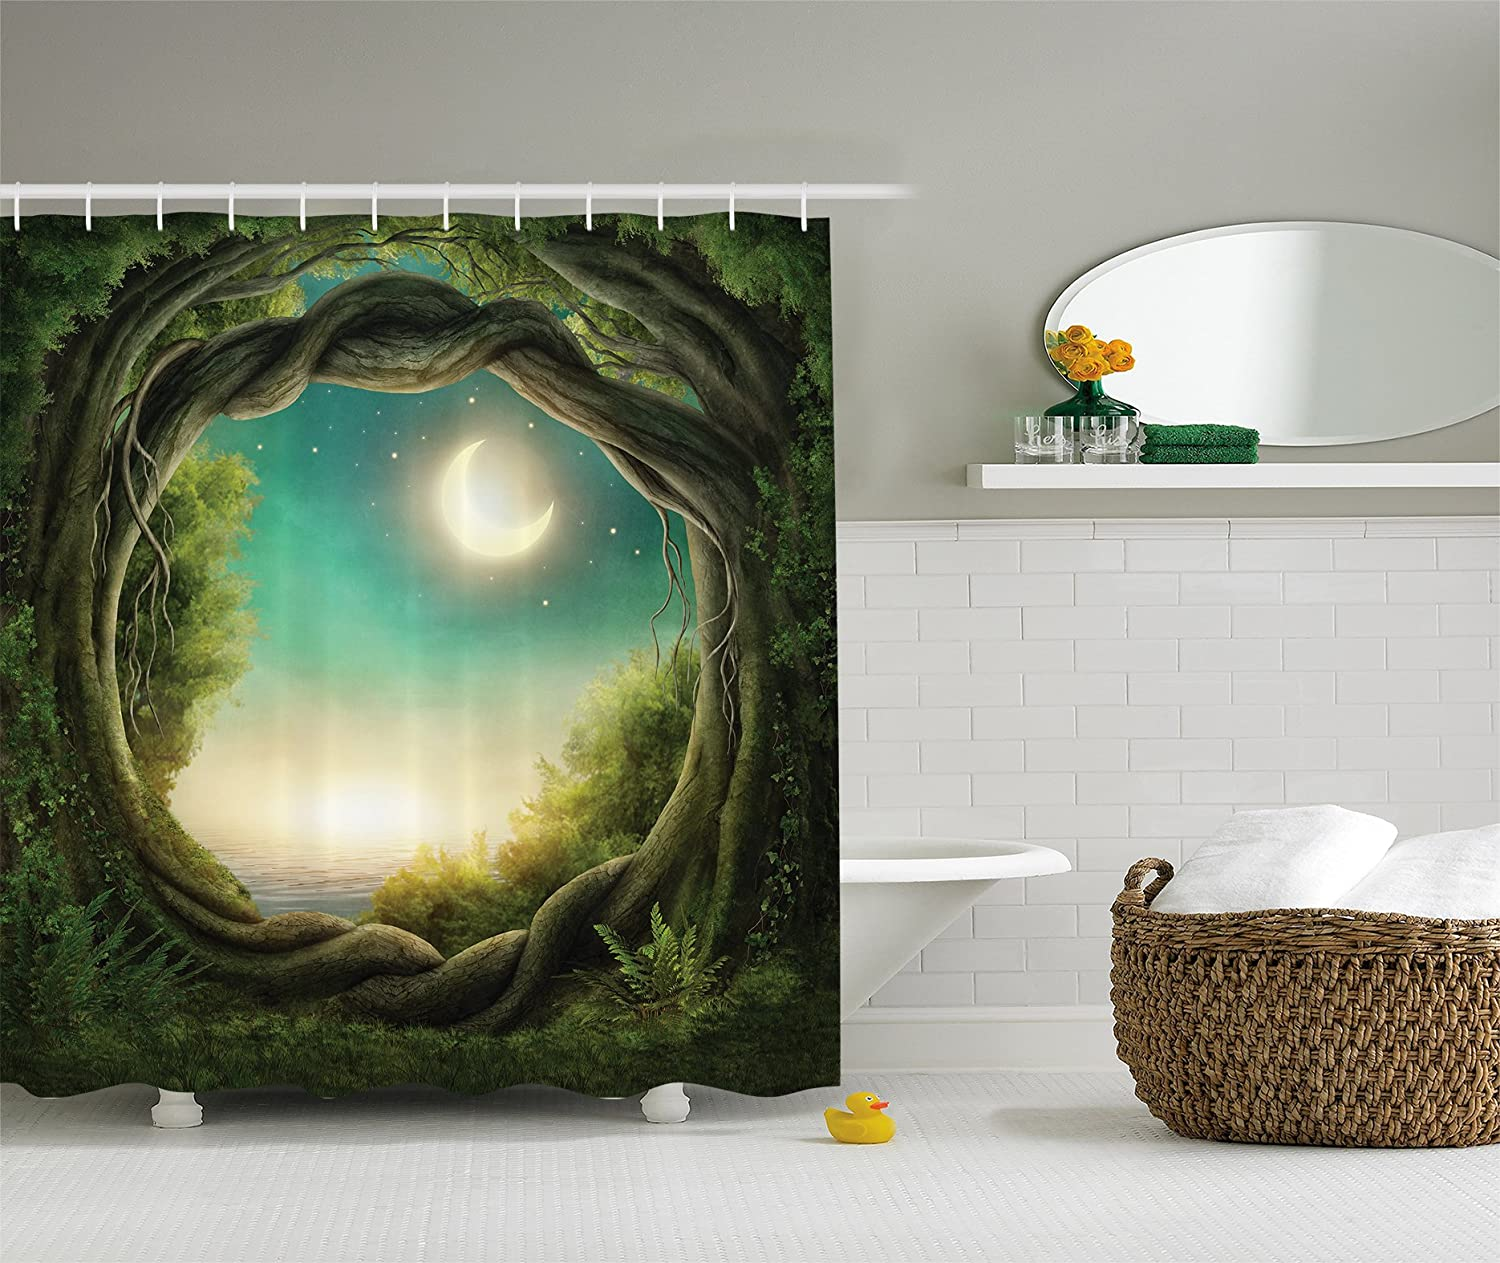 Amazon.com: Kids Shower Curtain Bathroom Decor By Ambesonne, Trees With  Fairy In Artistic Artwork Girls Boys And Family Enchanted Forest Full Moon  Fabric ...